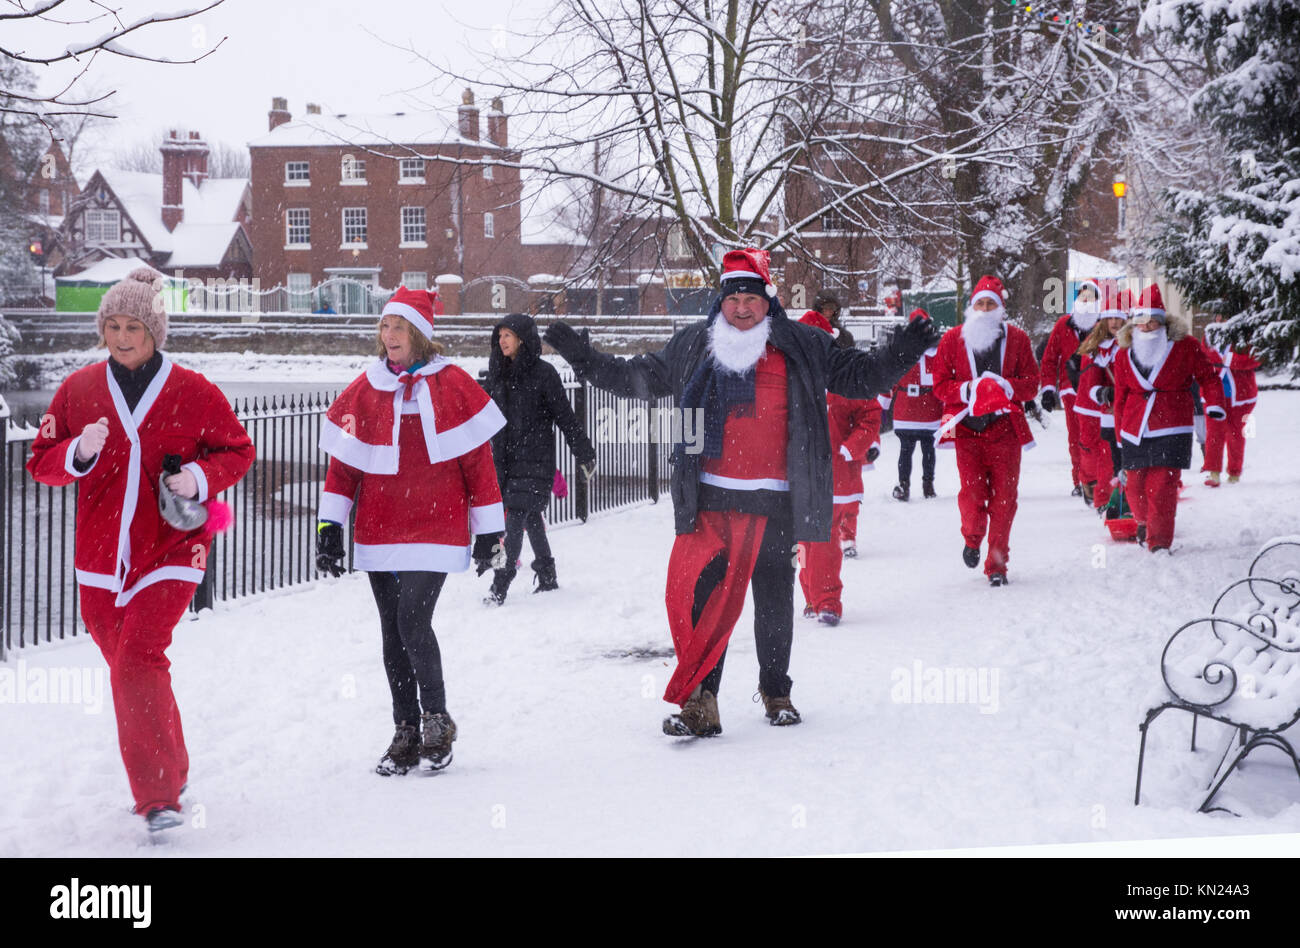 Lichfield, UK. 10th Dec, 2017. People taking part in the Lichfield Santa Dash go past Minster Pool dressed in Santa - Stock Image